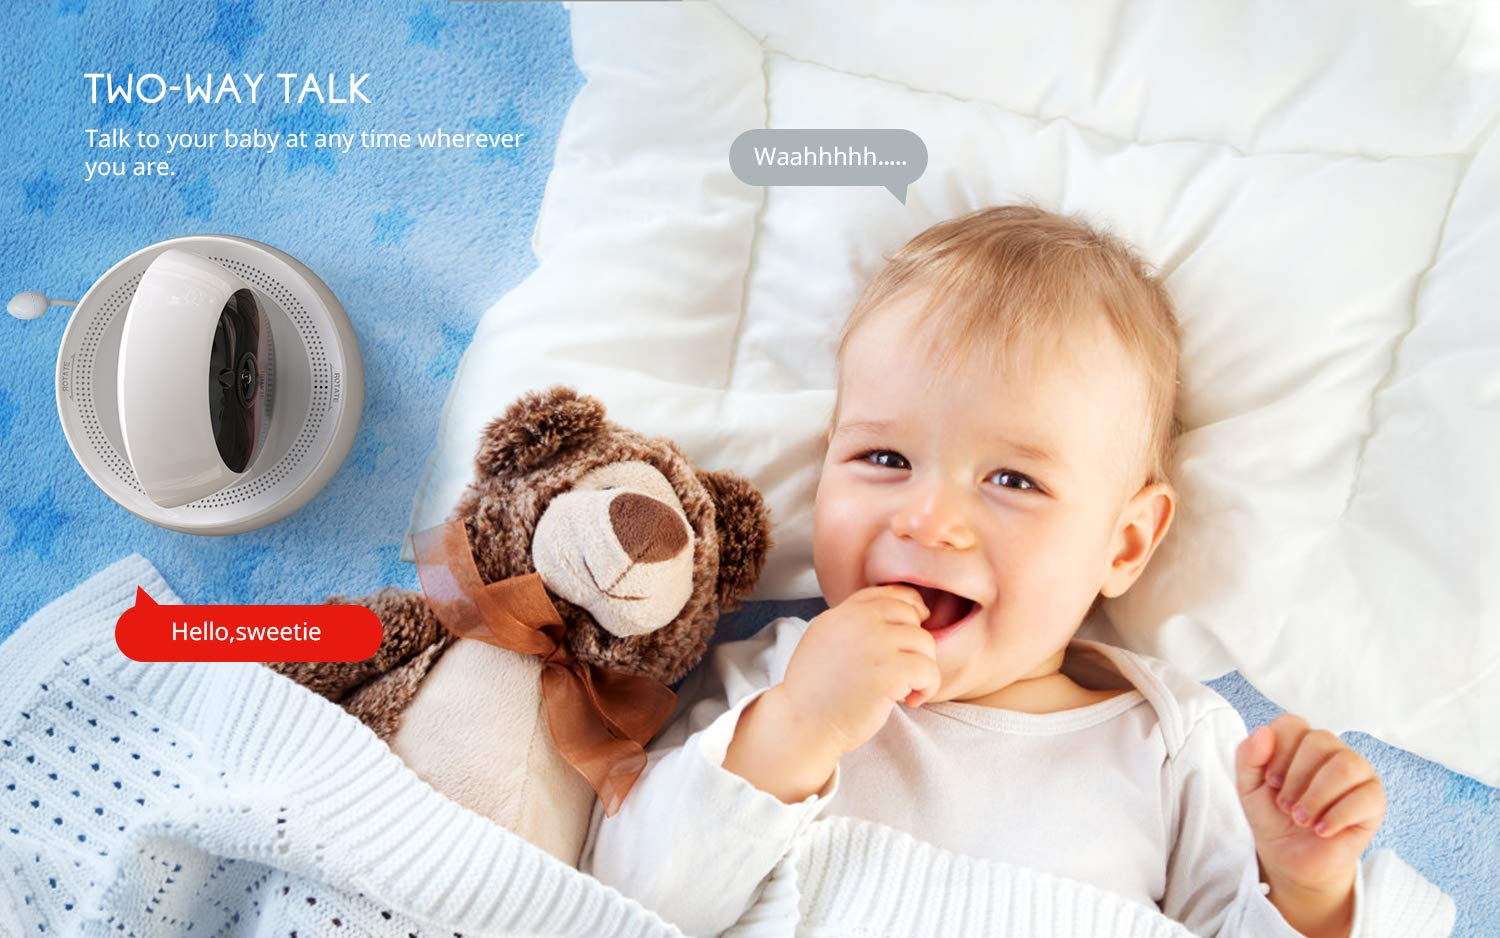 "Baby Monitor, COOAU 5"" Wireless Video Baby Monitor with 1280x720P HD Screen, 2000mAh Rechargeable Battery, Support Two-Way Audio, Infrared Night Vision, Temperature Monitor, 2.4GHz Safe Connection COOAU 👶 5"" 1280*720P HD LCD Screen with 1 Million Pixel Camera: COOAU baby monitor comes with a high quality screen and camera, bring a crystal clear view, no grainy and washed out, even in dark. 👶 Pan Tilt & 2X Zoom-in: You can adjust the angle via 355*120 degree pan/tilt remote control, zoom right in and see if your baby's eyes were opened or closed without any issue. 👶 Infrared Invisible Night Vision: Using 940nm infrared light, effectively protect your baby's eyes. Up to 5 meters night vision viewing distance, pick up images of your baby in dark or low light conditions. 5"